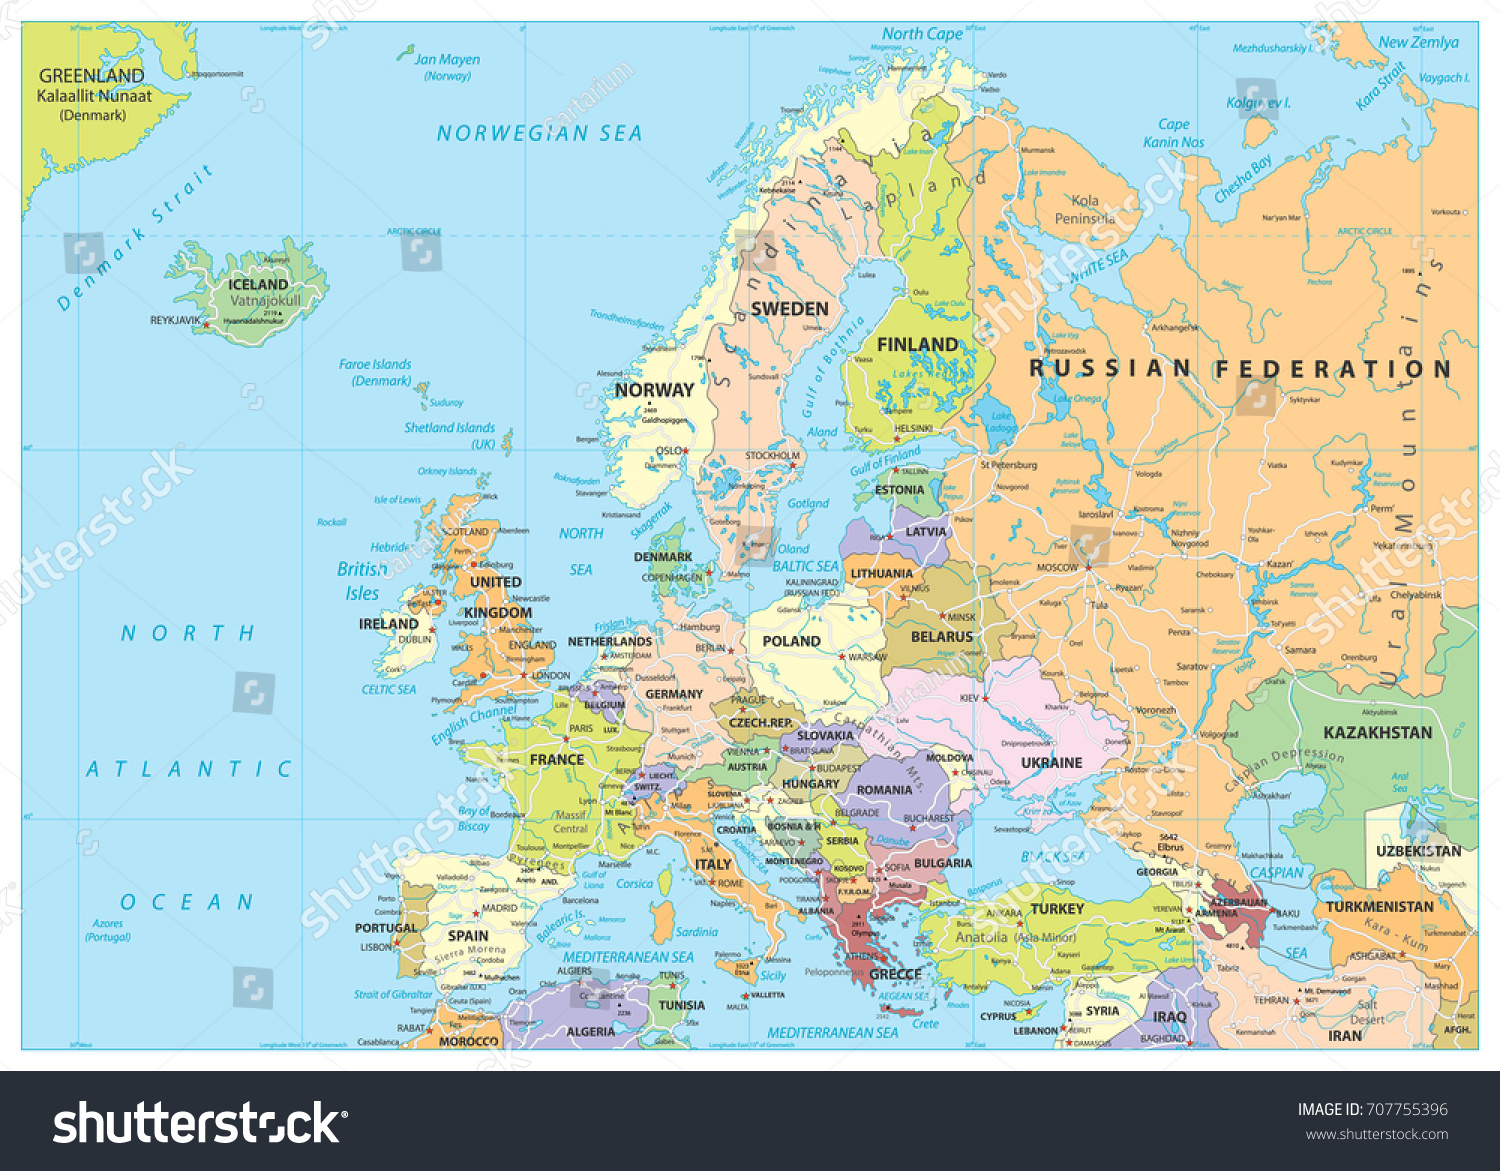 Europe Political Map Roads Detailed Vector Stock Vector 707755396